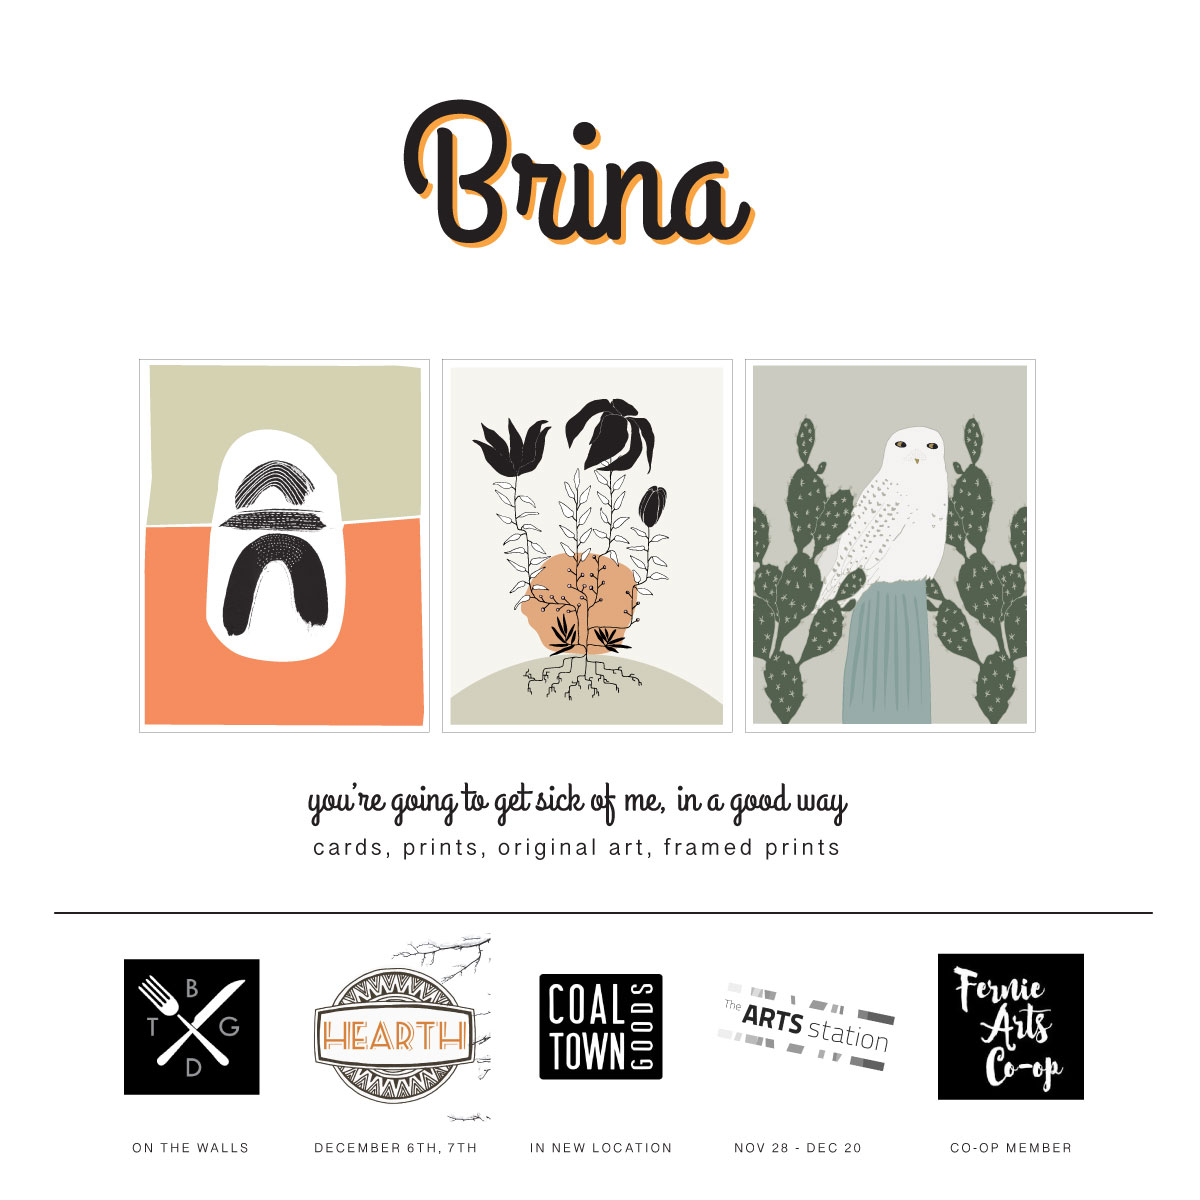 Where To Buy Brina's Art This December